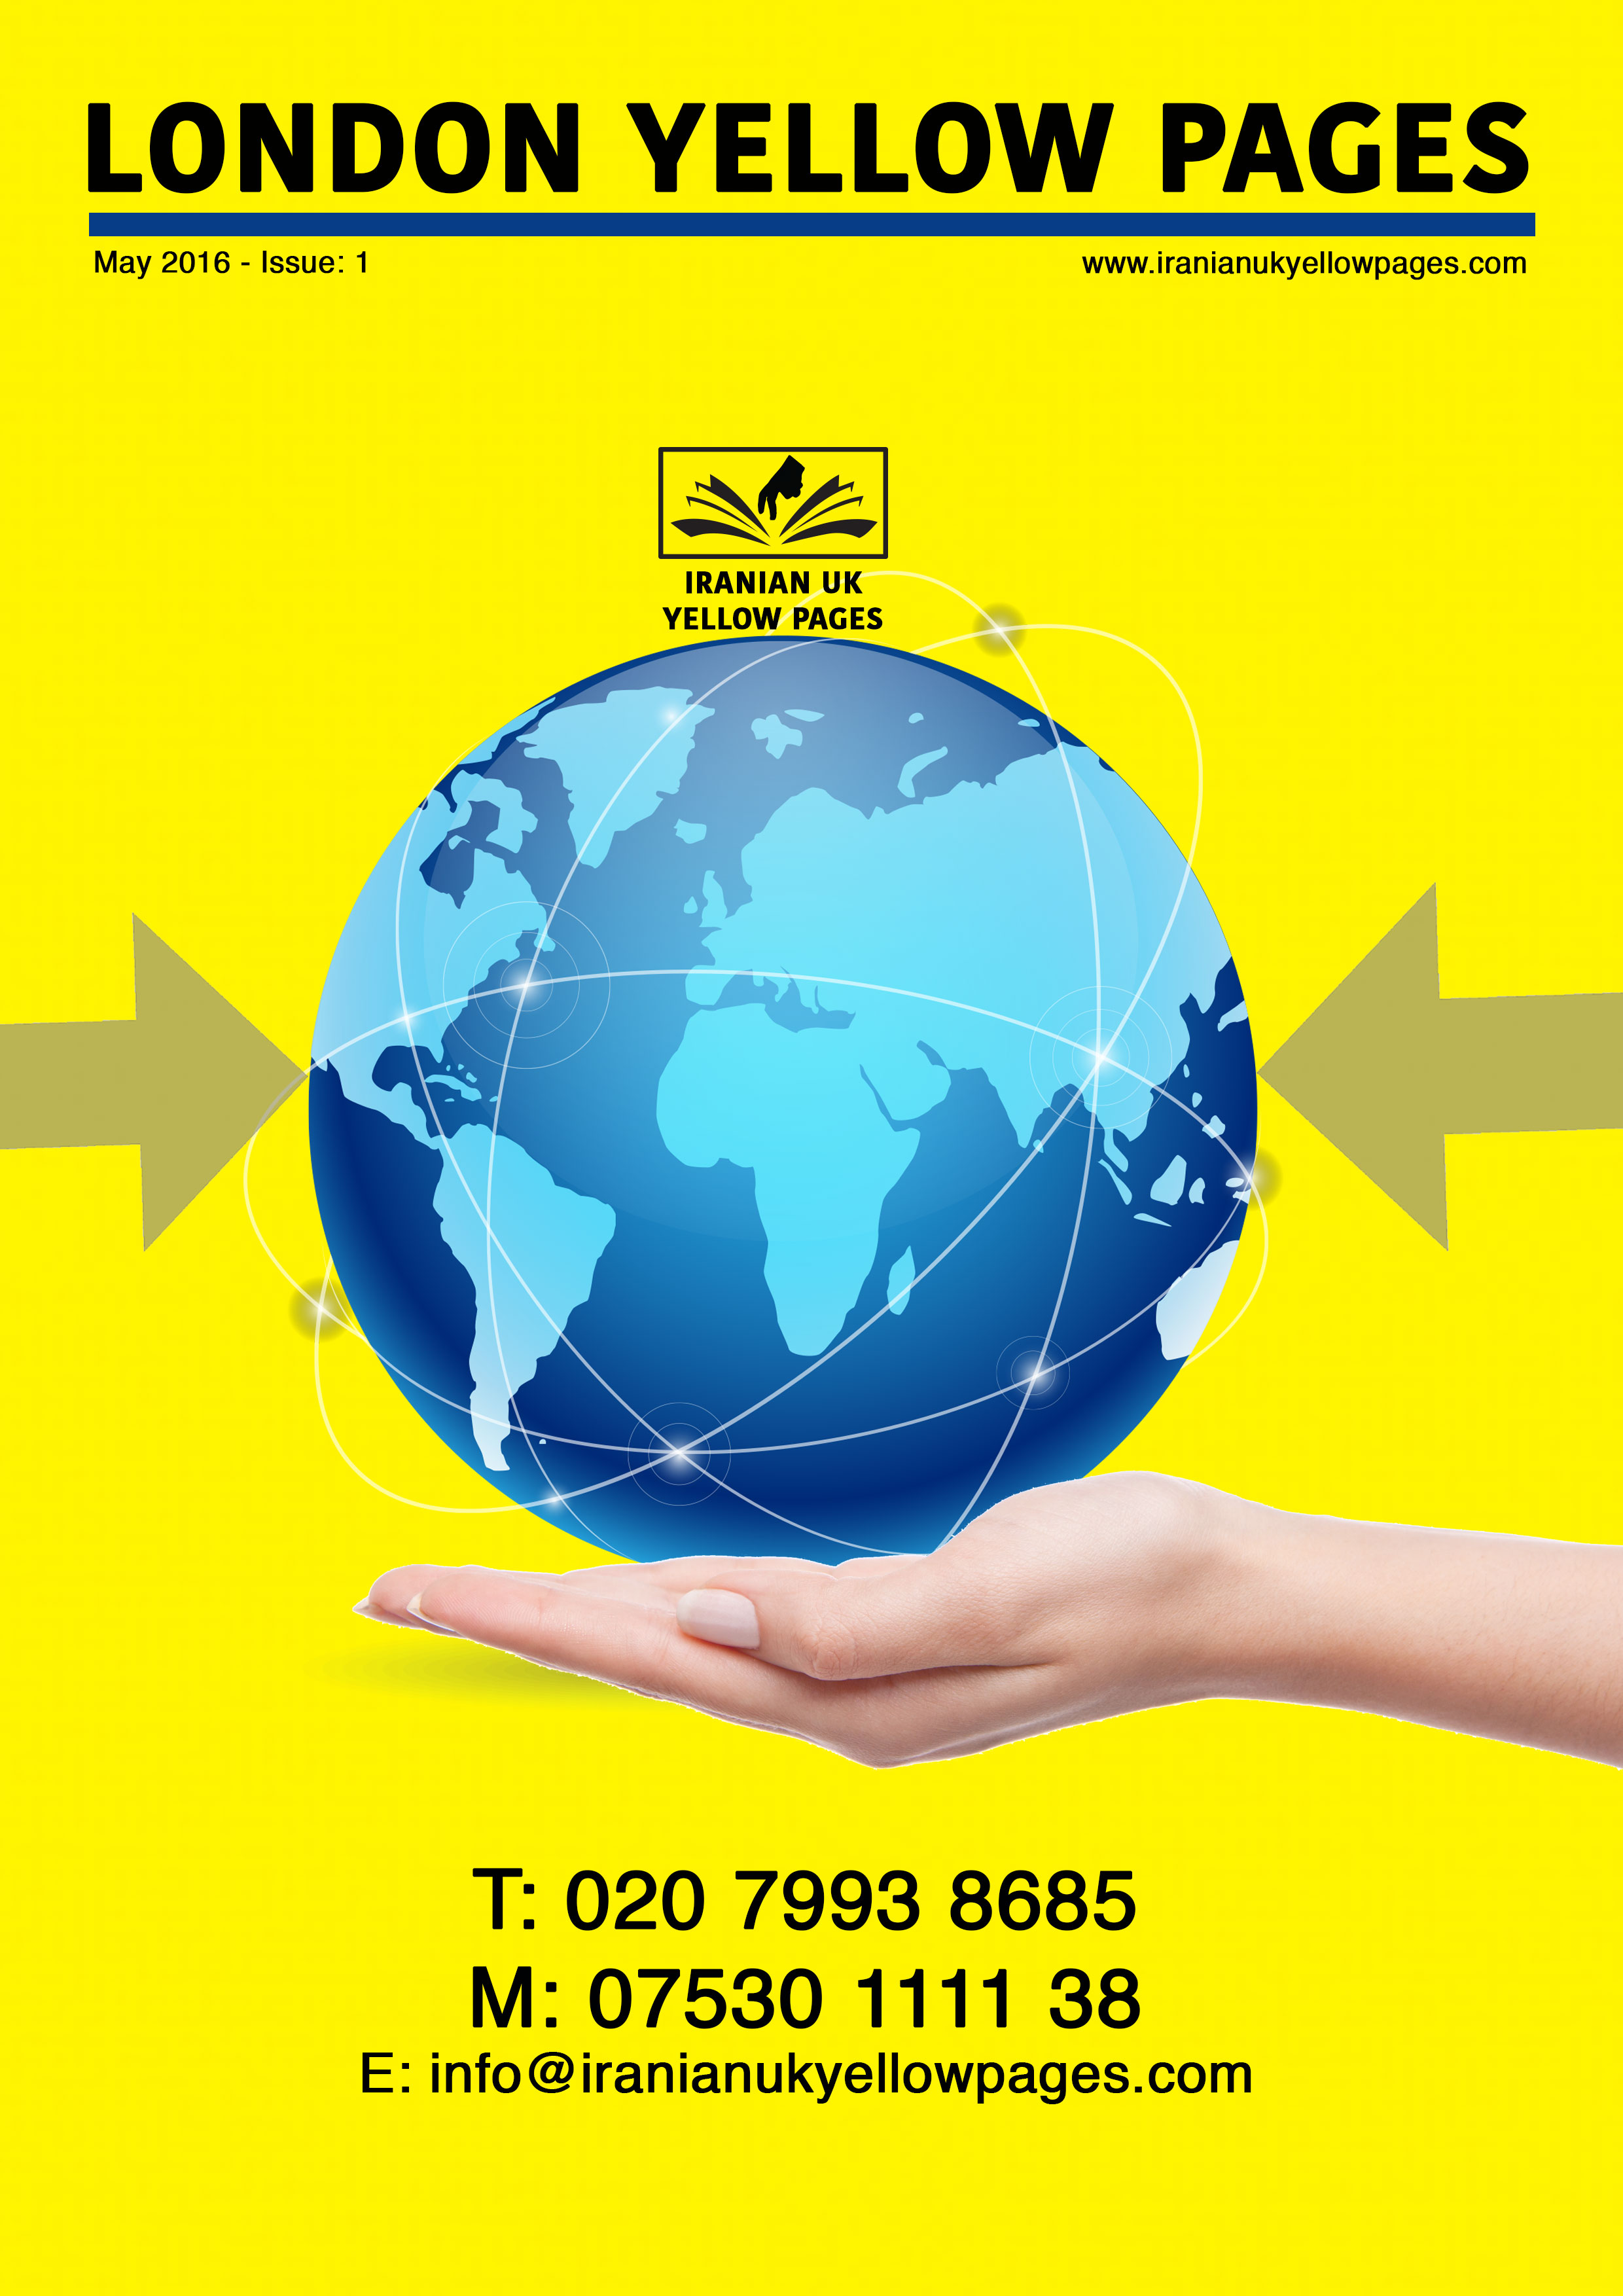 london-Yellow-Pages English Iranian UK Yellow Pages